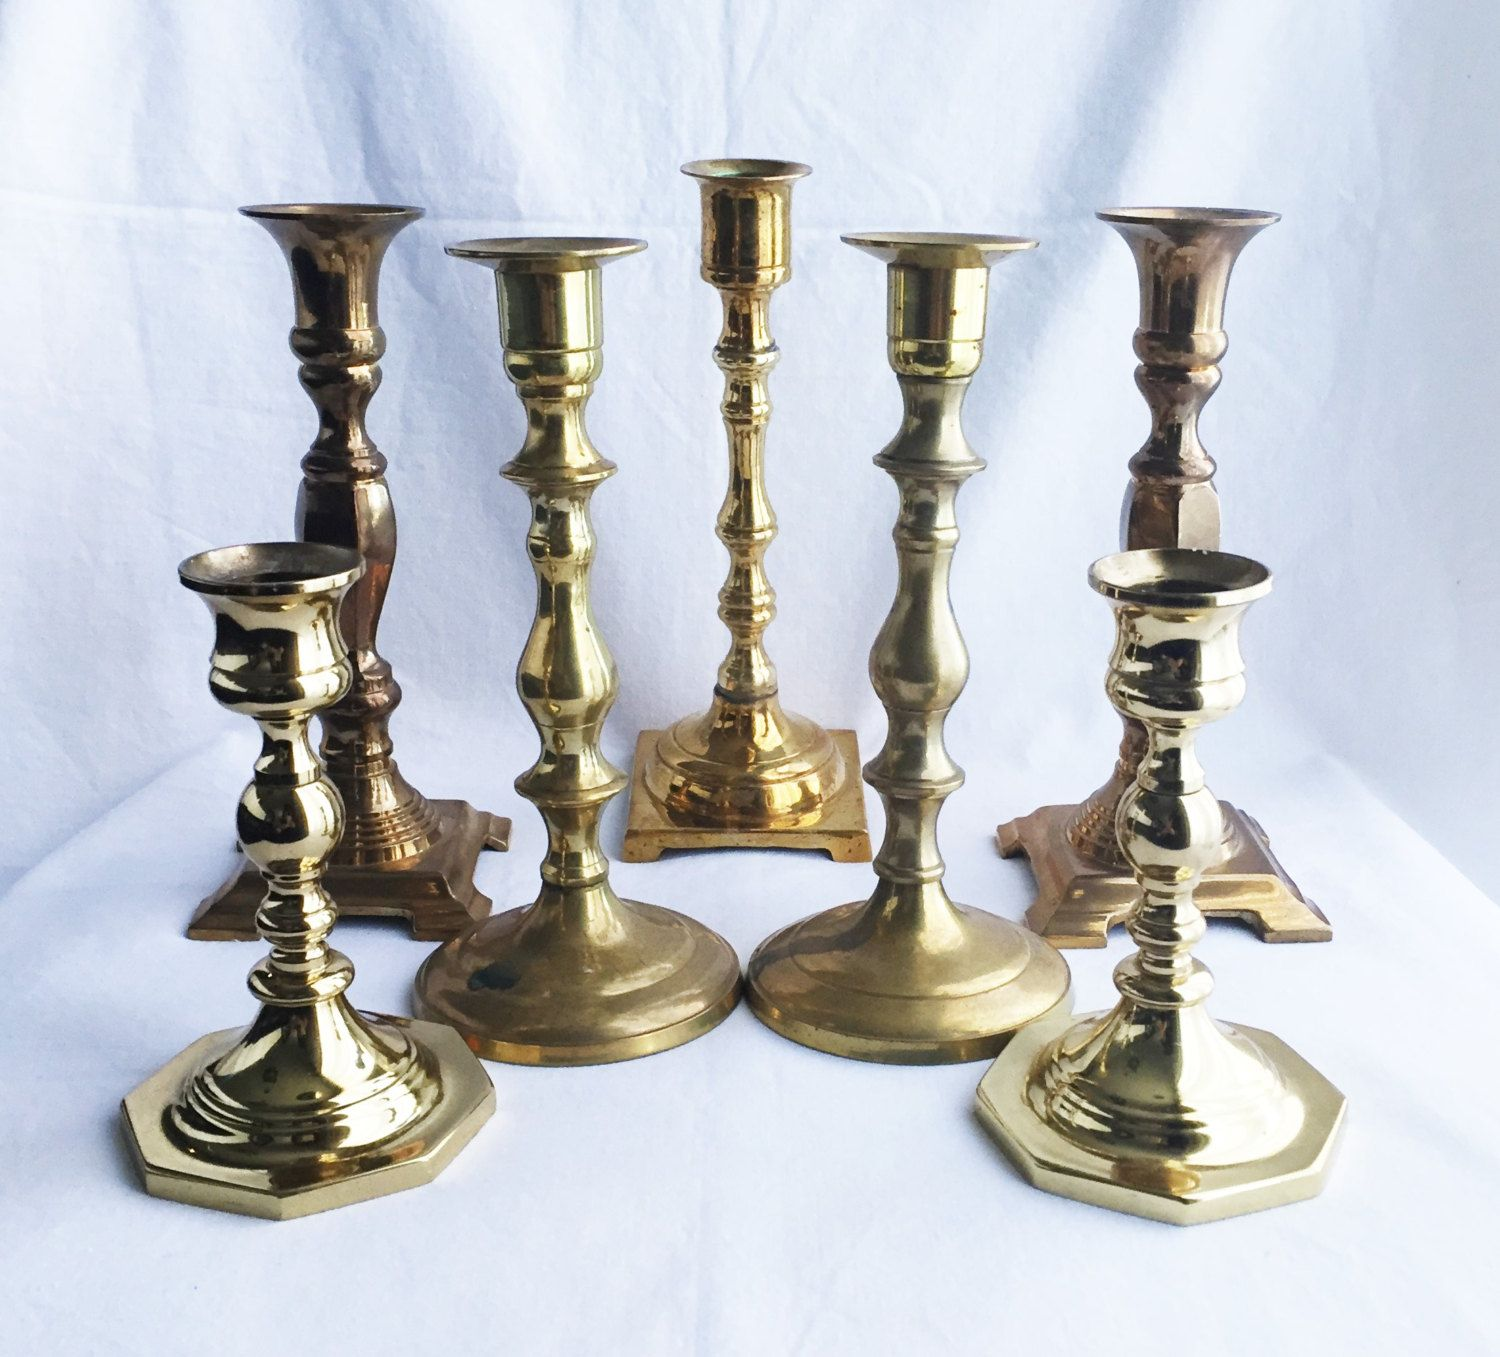 Brass candlesticks vintage candle holders